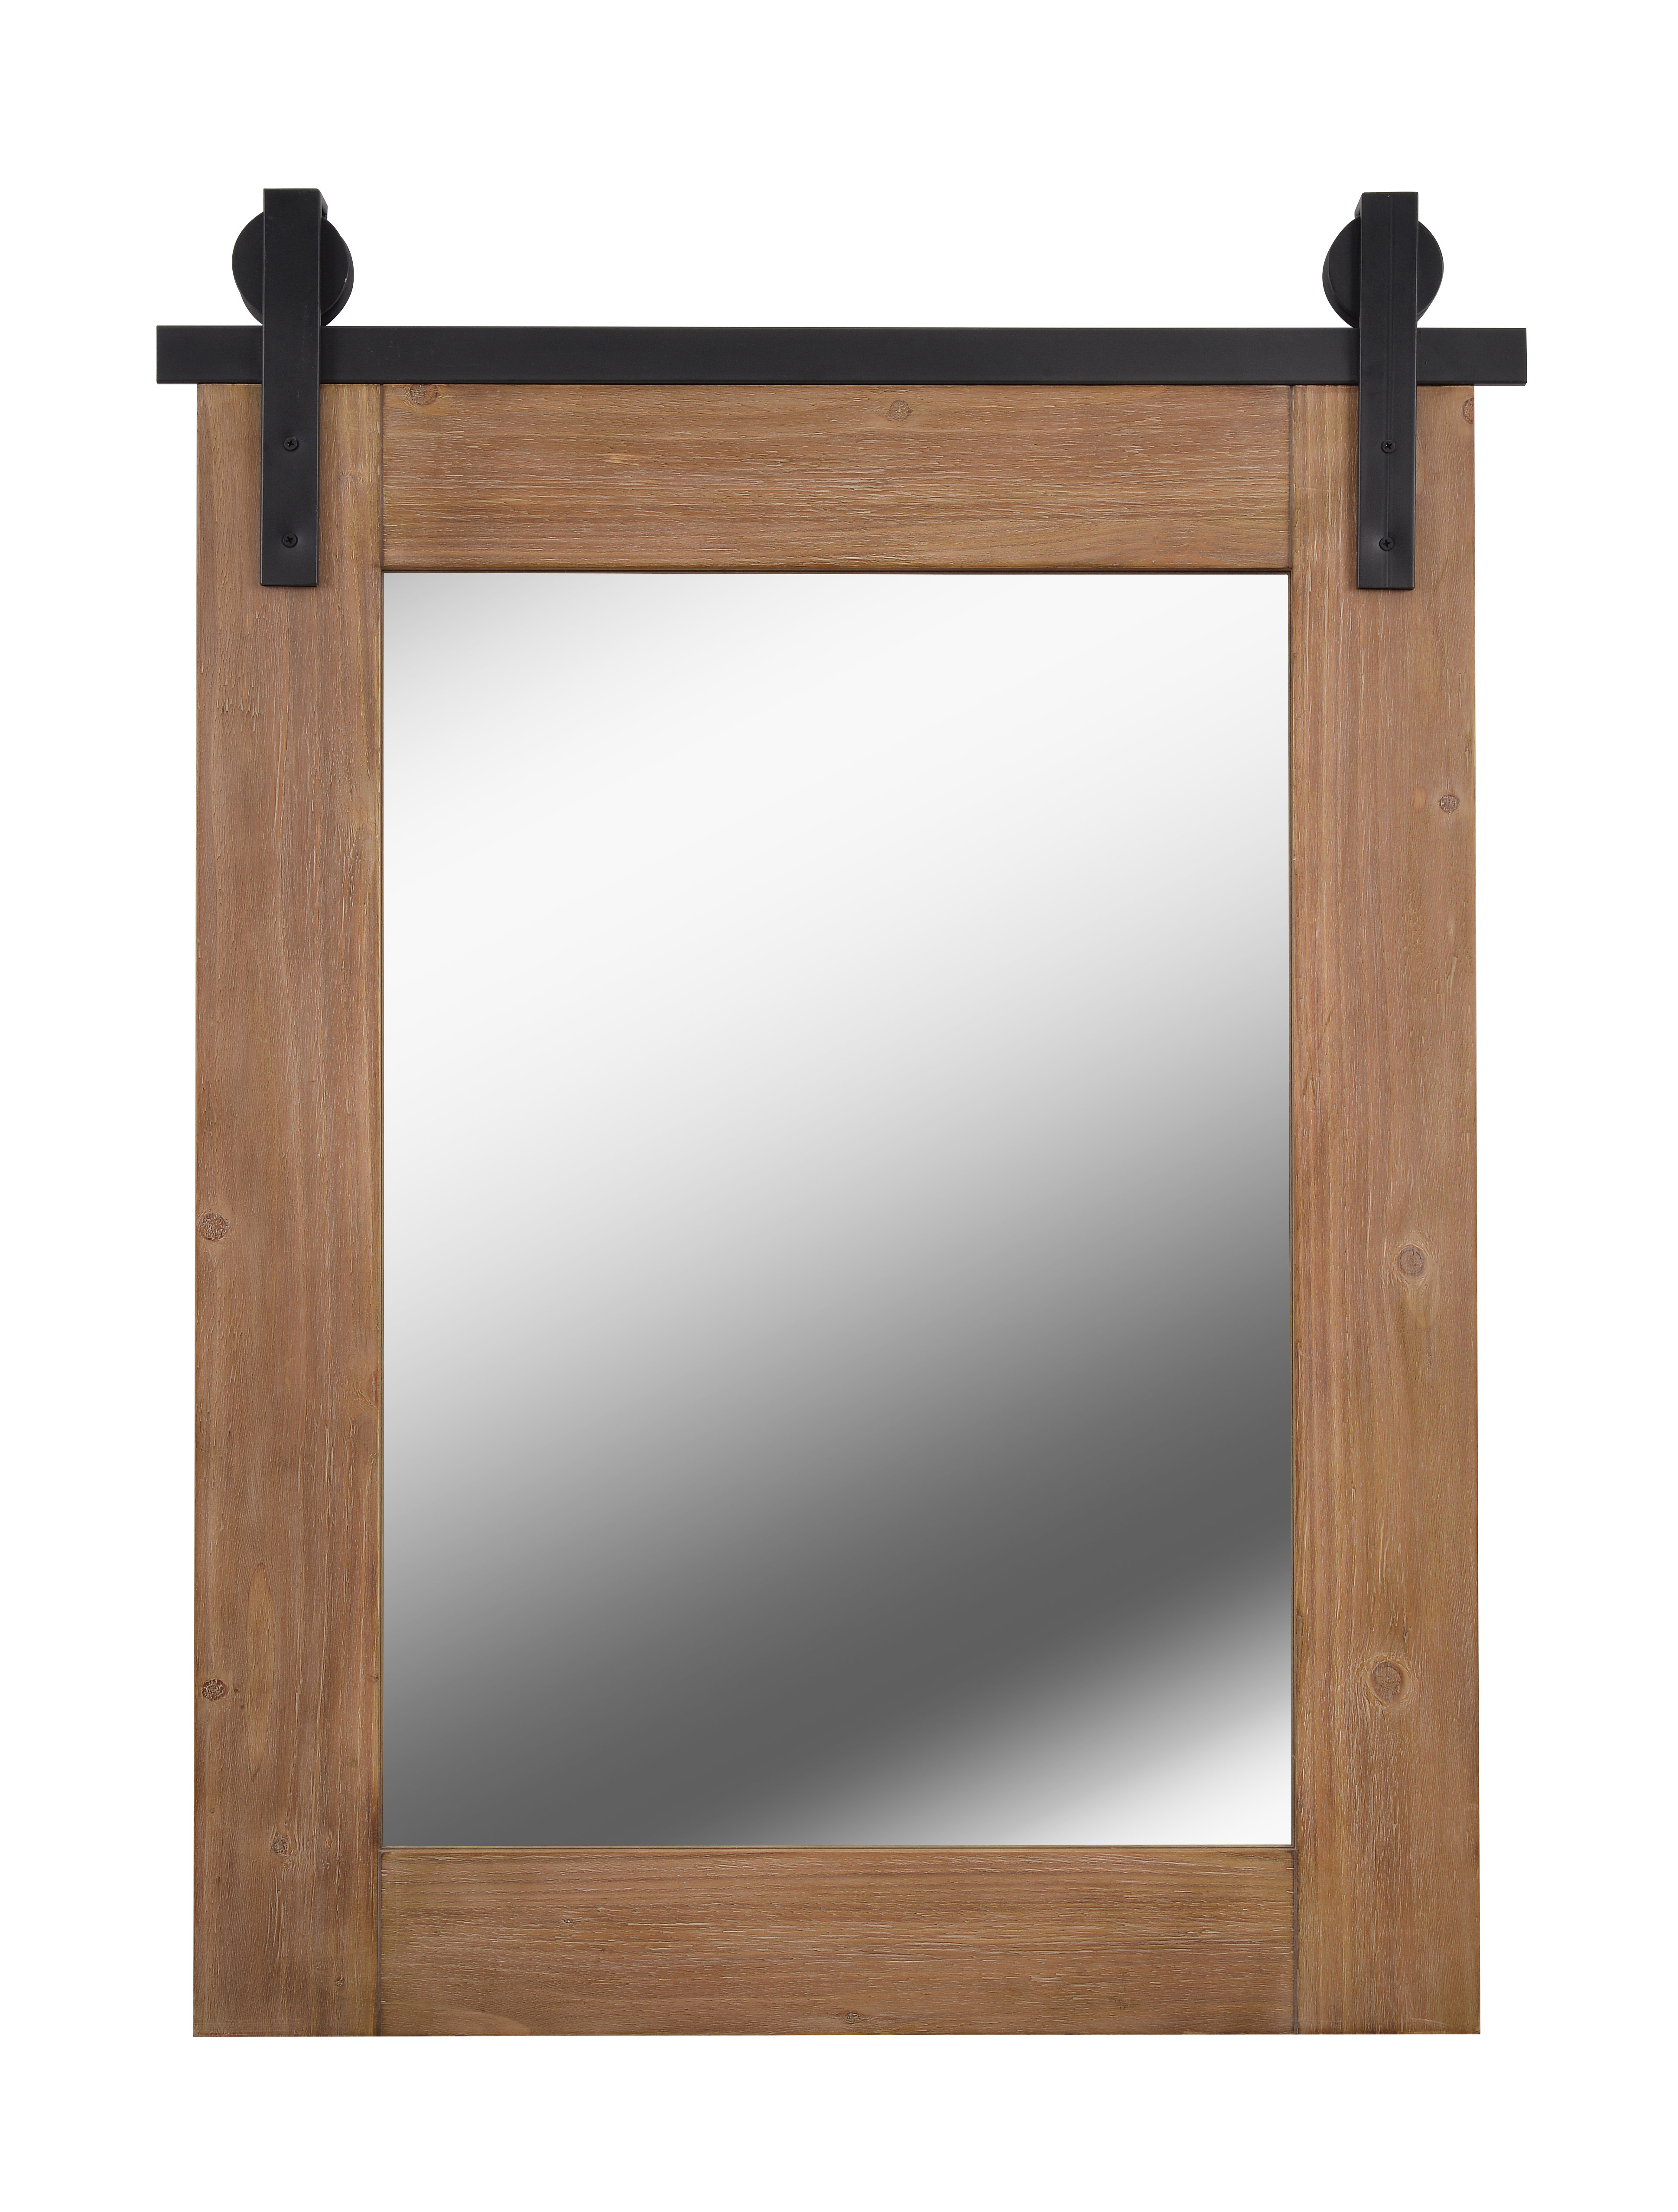 Robson Accent Mirror Intended For Berinhard Accent Mirrors (Image 15 of 20)